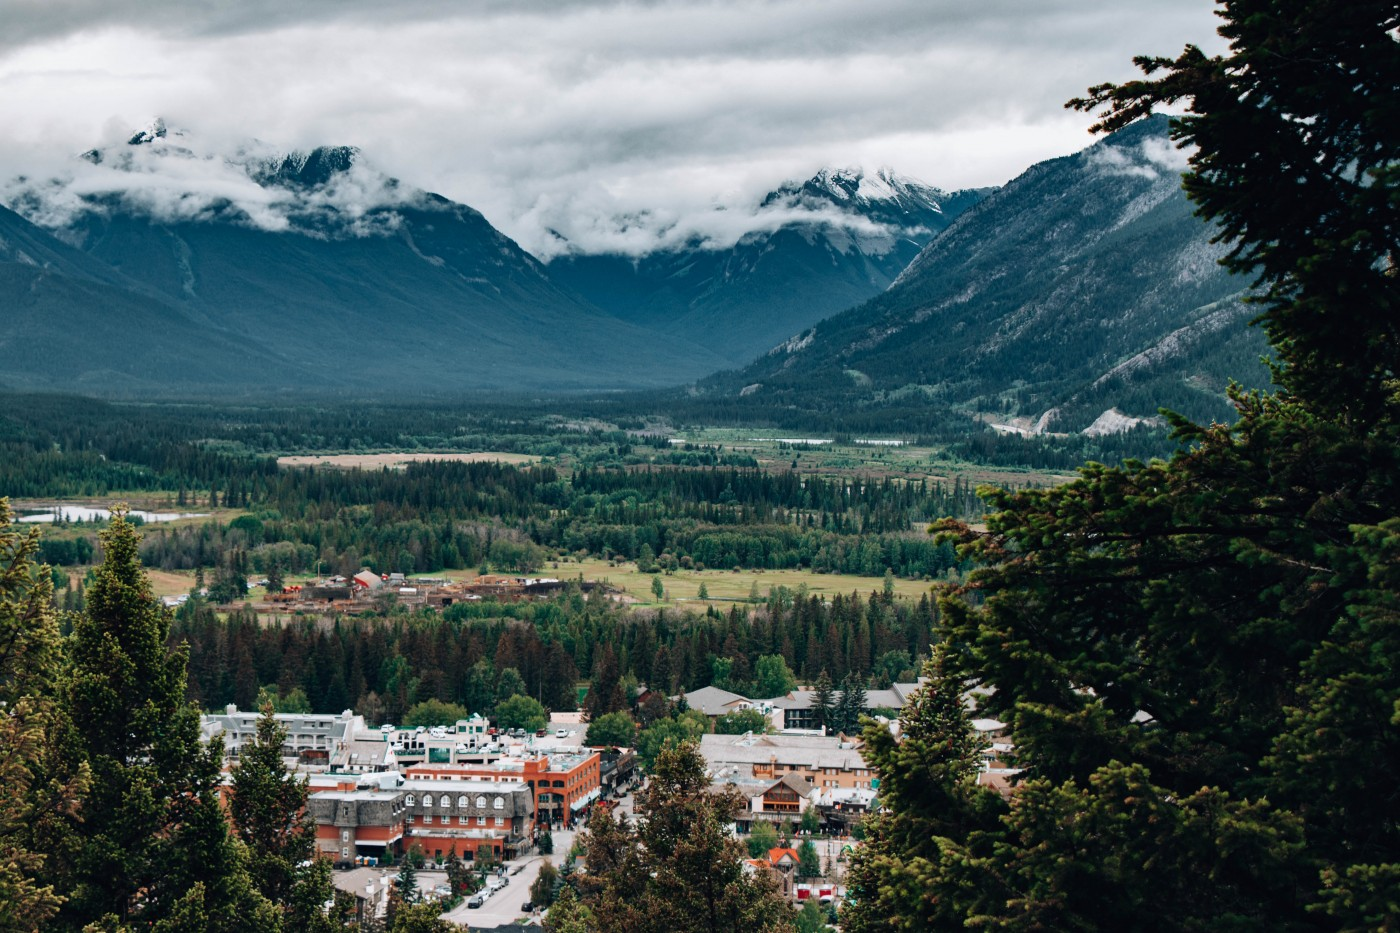 Downtown Banff | Top 10 Photography Spots in Banff National Park